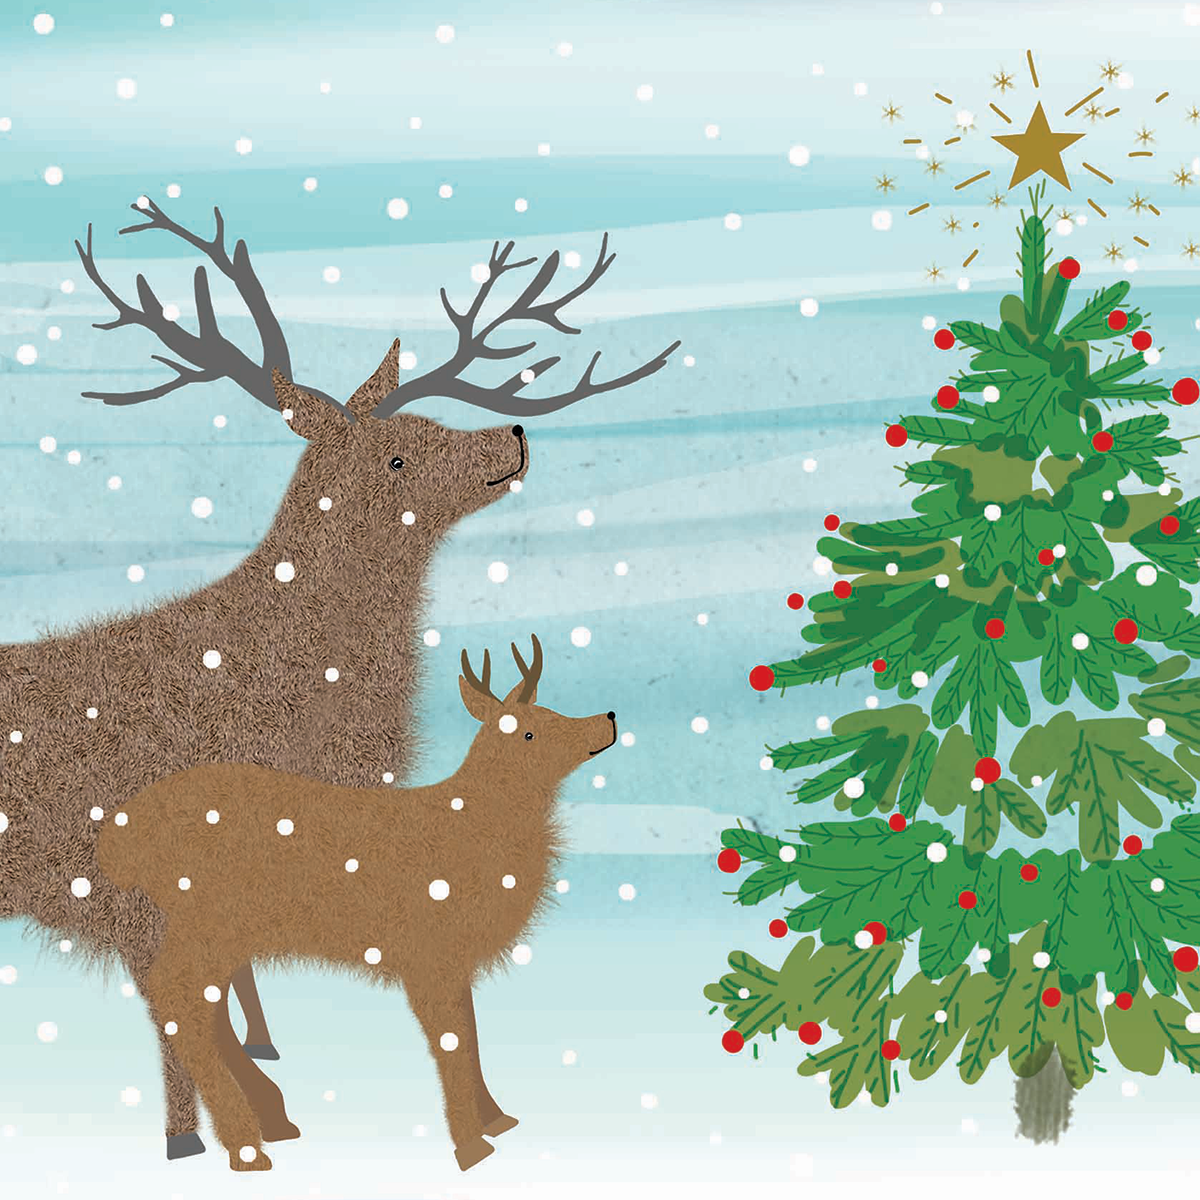 Pack of 10 140mm x 140mm WWF Lovely Christmas Tree Christmas cards ...